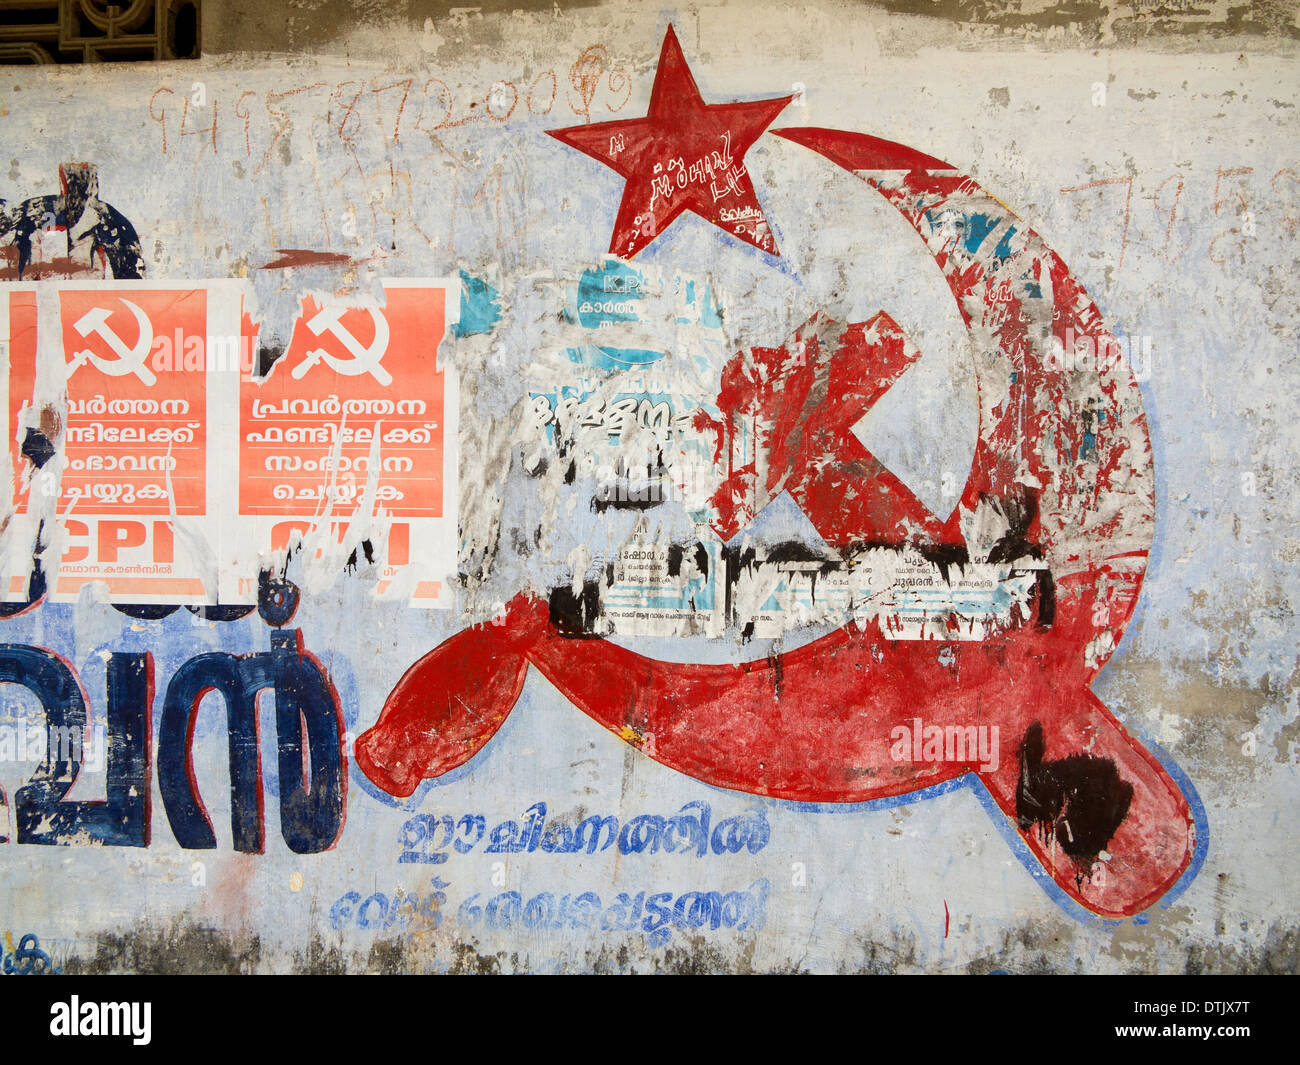 India, Kerala, politics, Communist Party hammer and sickle symbol part obscured on wall - Stock Image